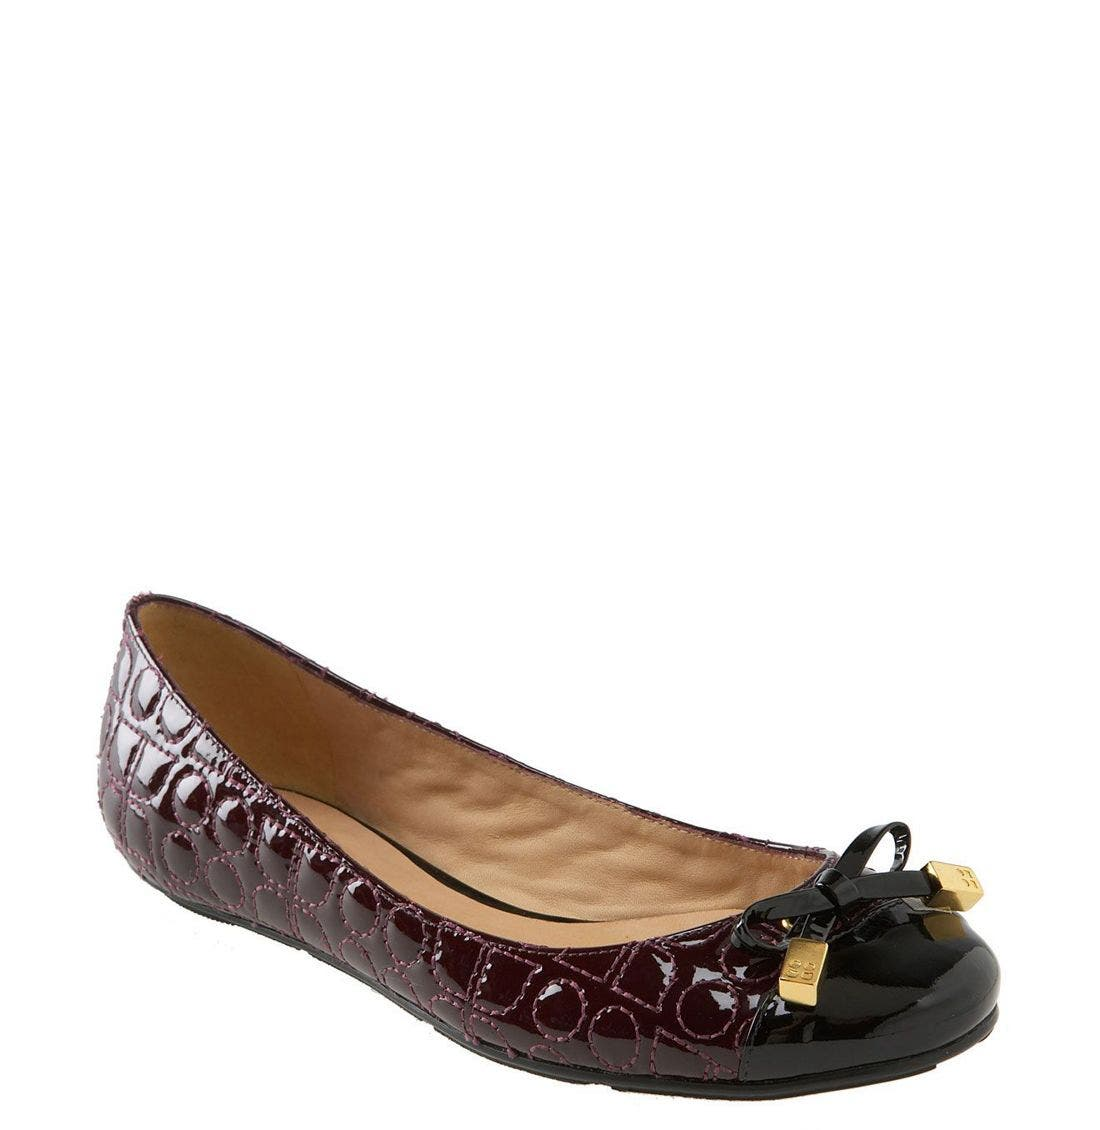 Alternate Image 1 Selected - kate spade 'jian' flat